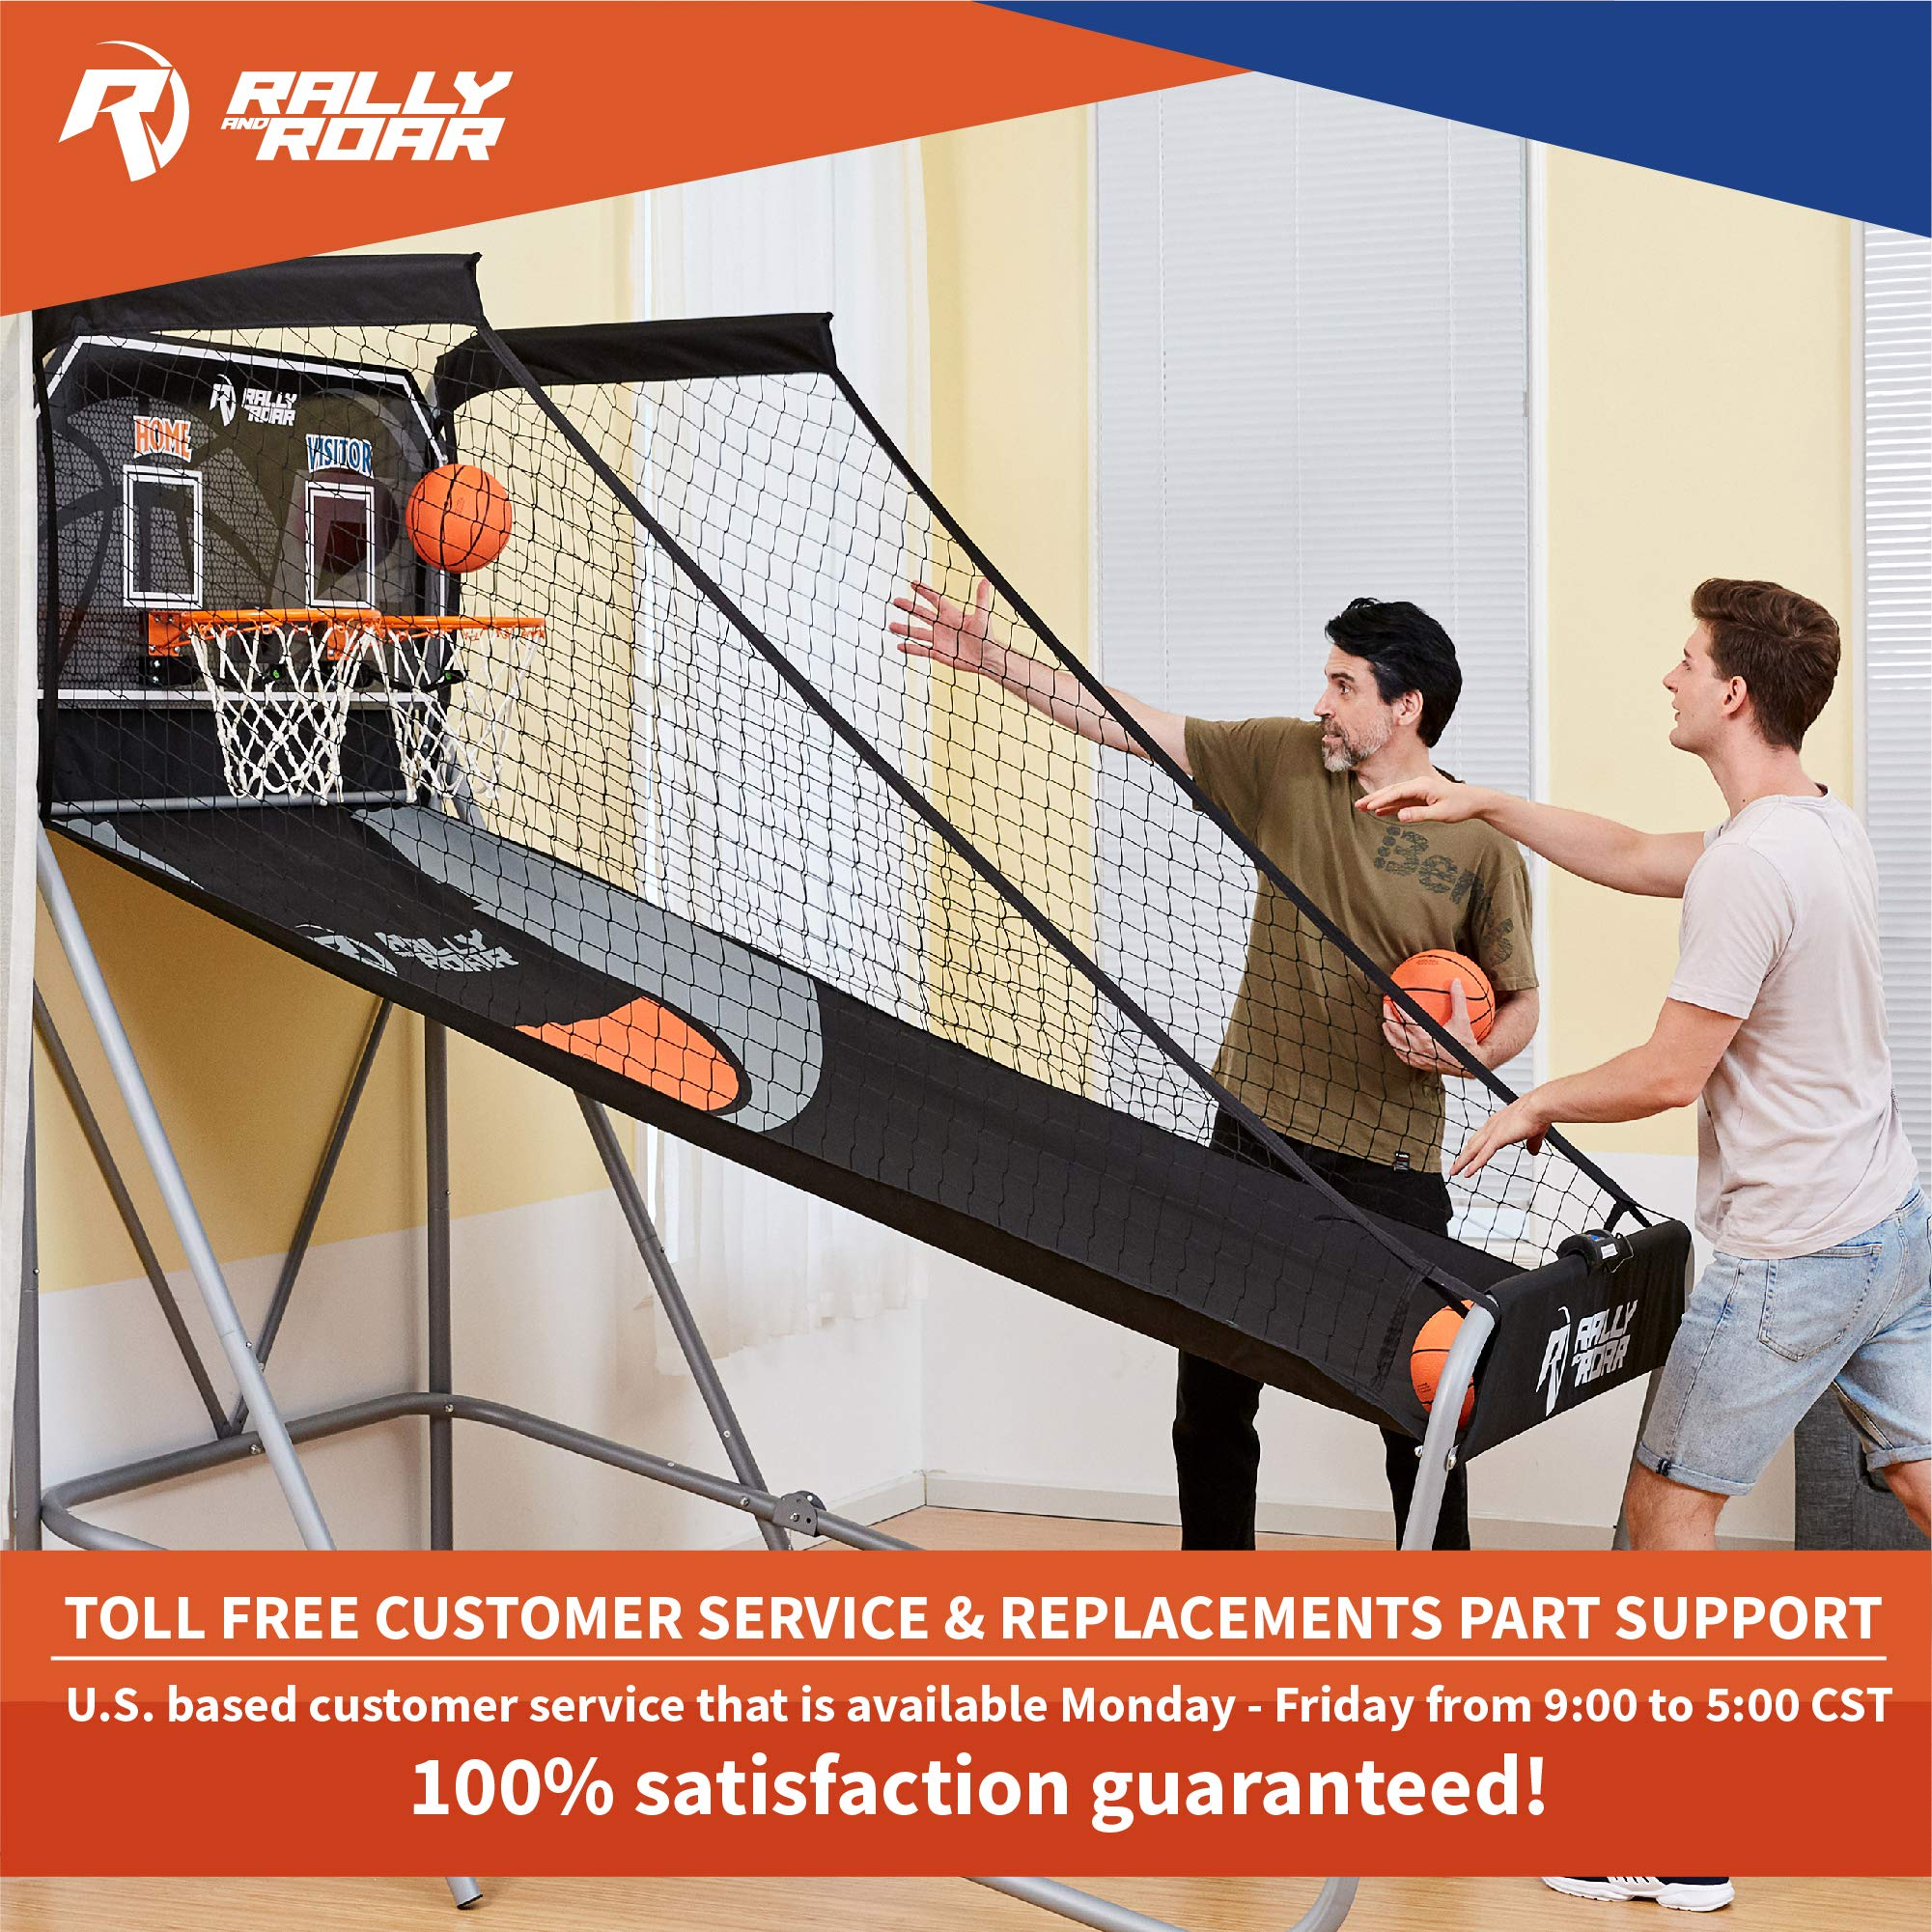 Classic Shootout Basketball Arcade Game, Home Dual Shot with LED Lights and Scorer - 8-Option Interactive Indoor Basketball Hoop Game with Double Hoops, 7 Basketballs, Pump - Foldable Space Saver by Rally and Roar (Image #7)